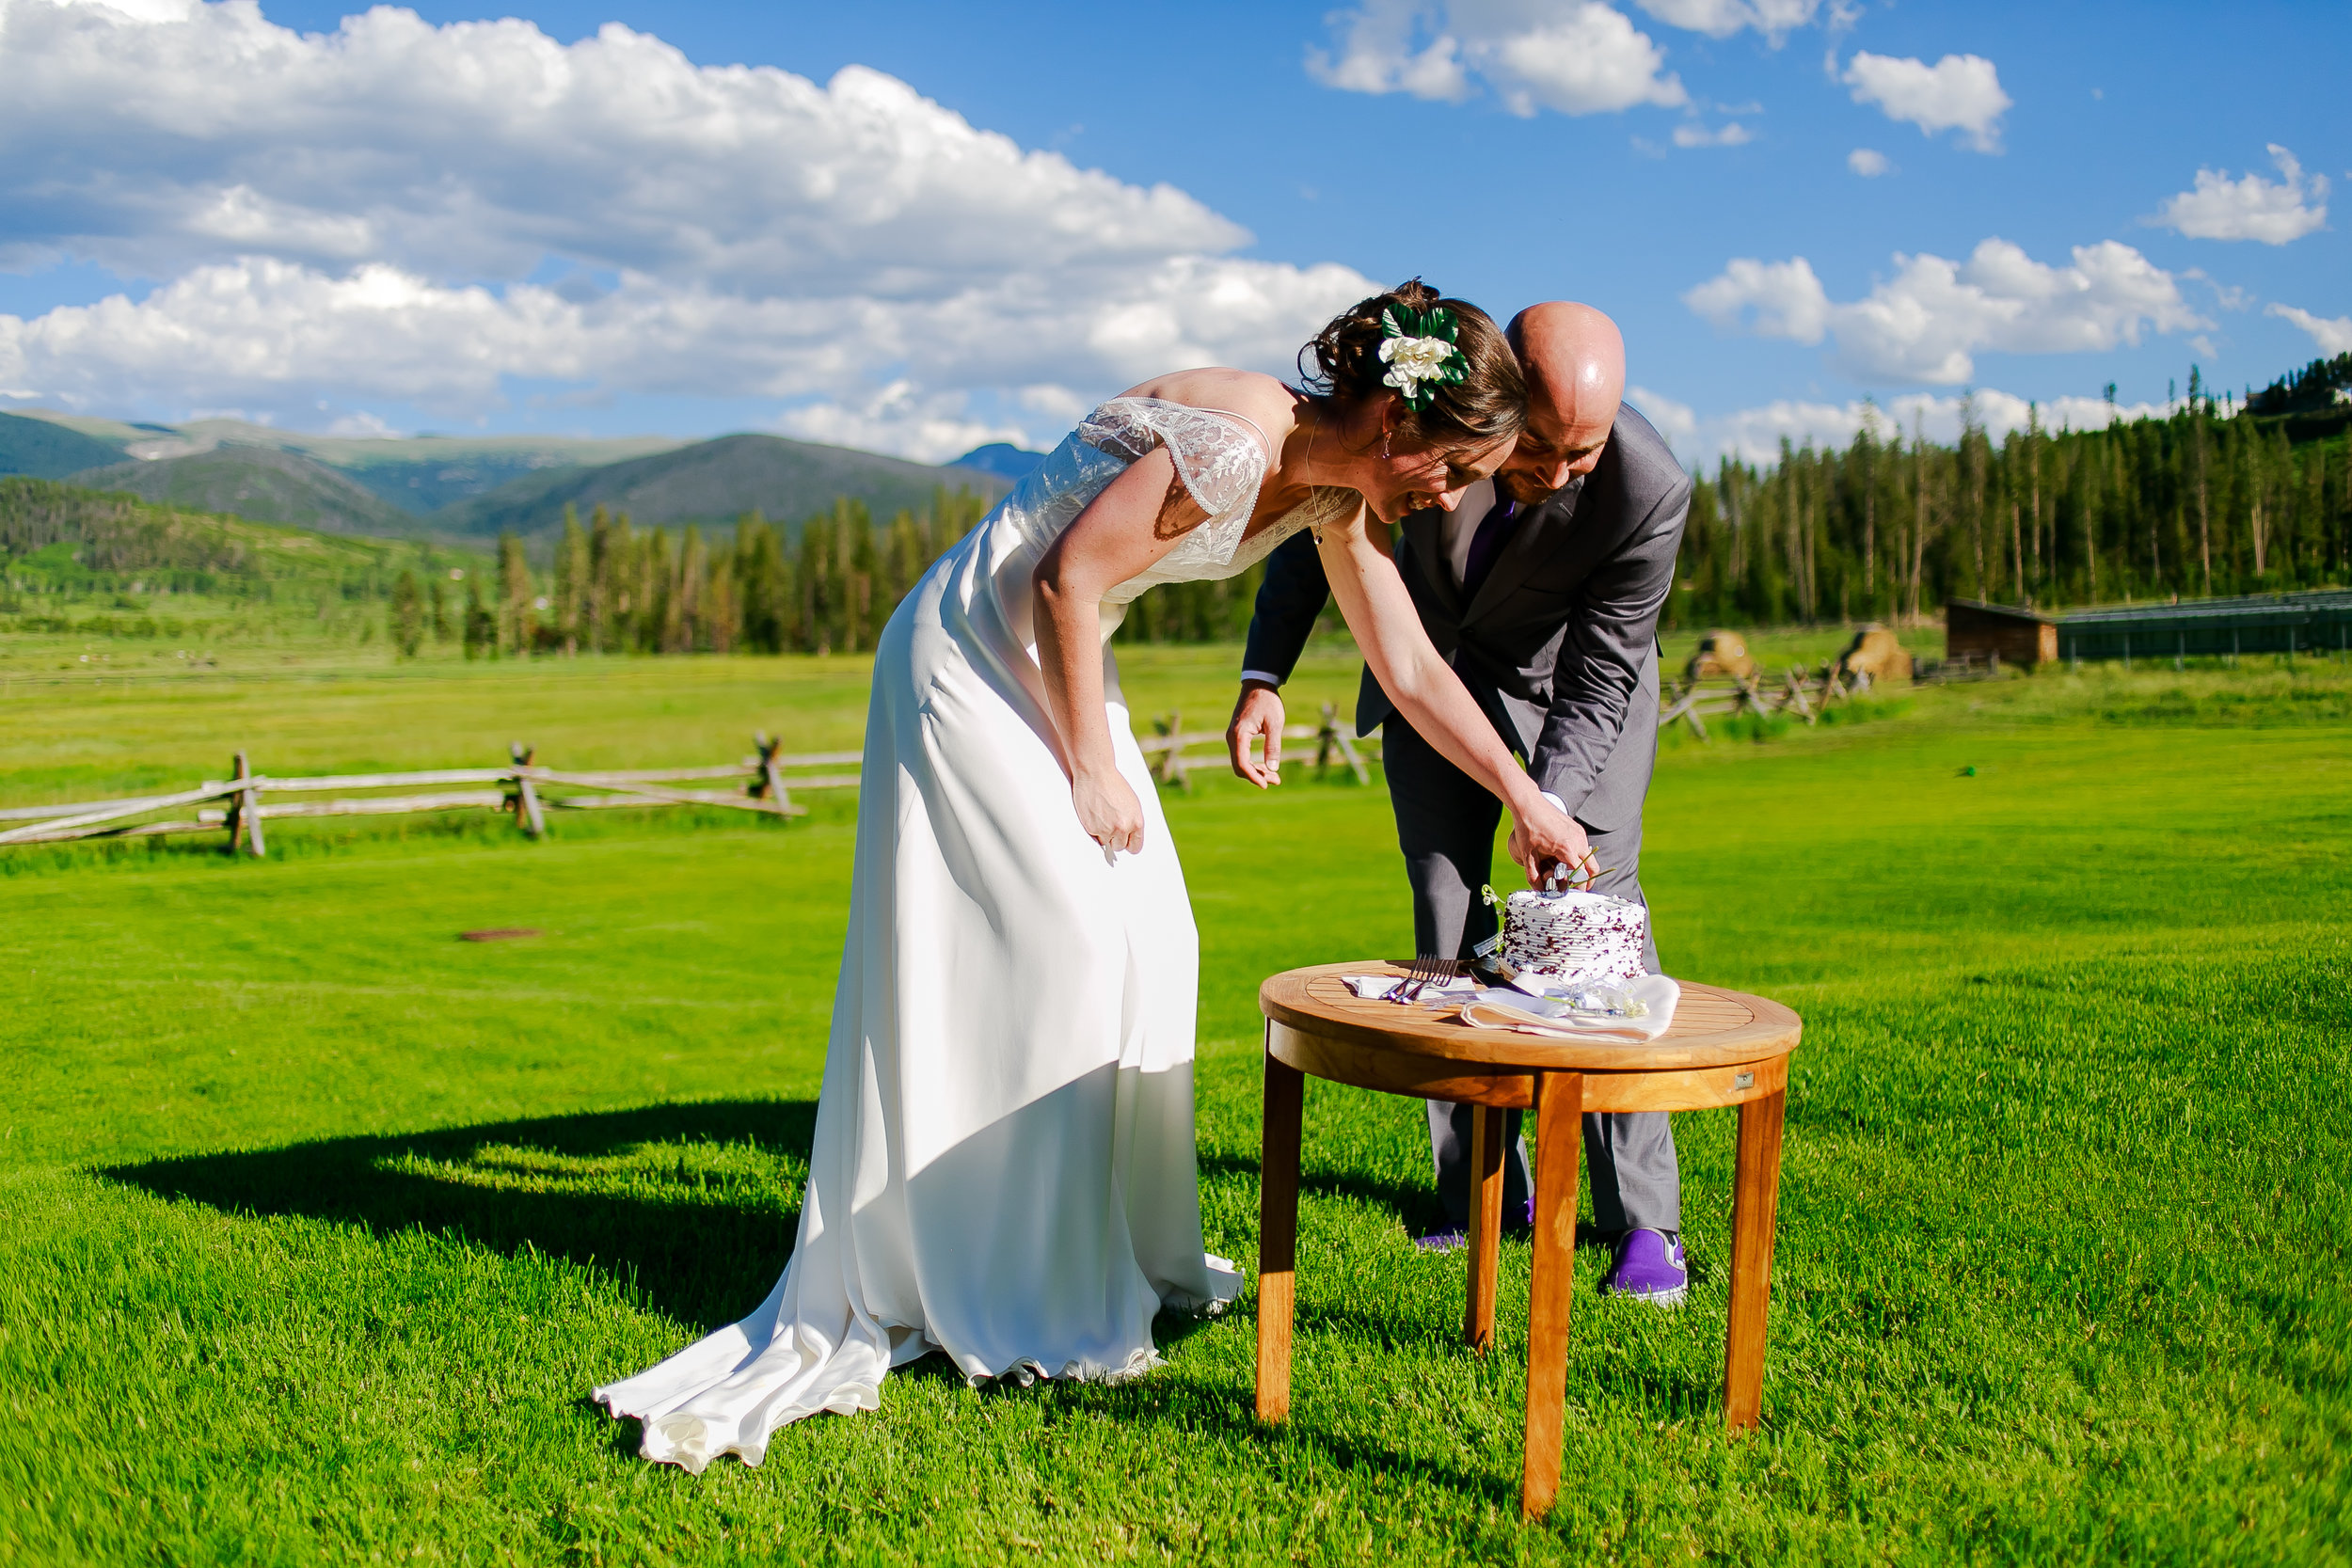 Co + John Wedding559(J97A0713).jpg